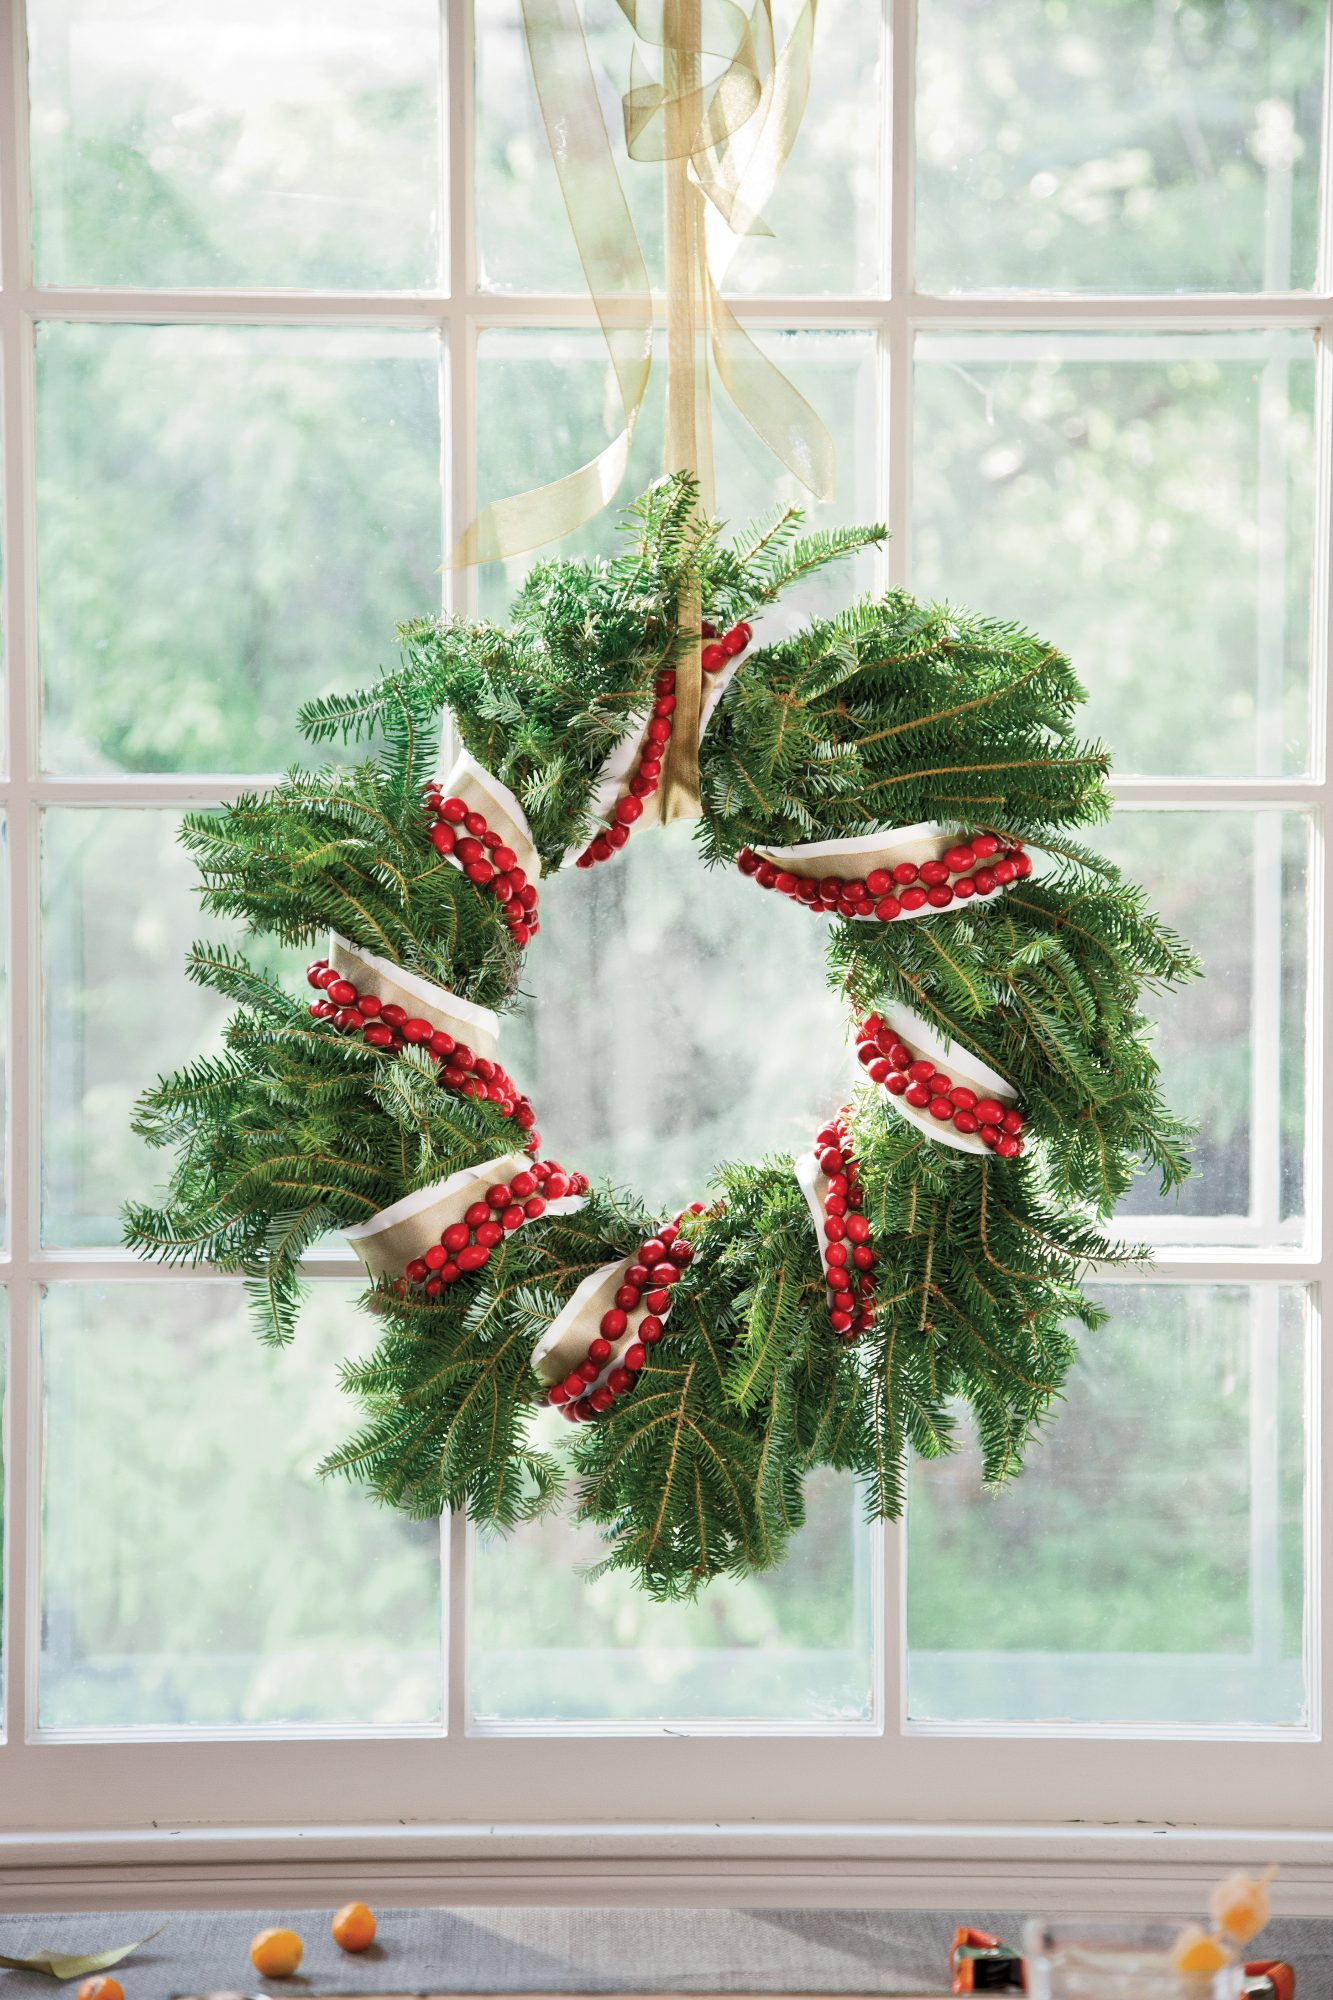 christmas window decorations - When Should I Start Decorating For Christmas